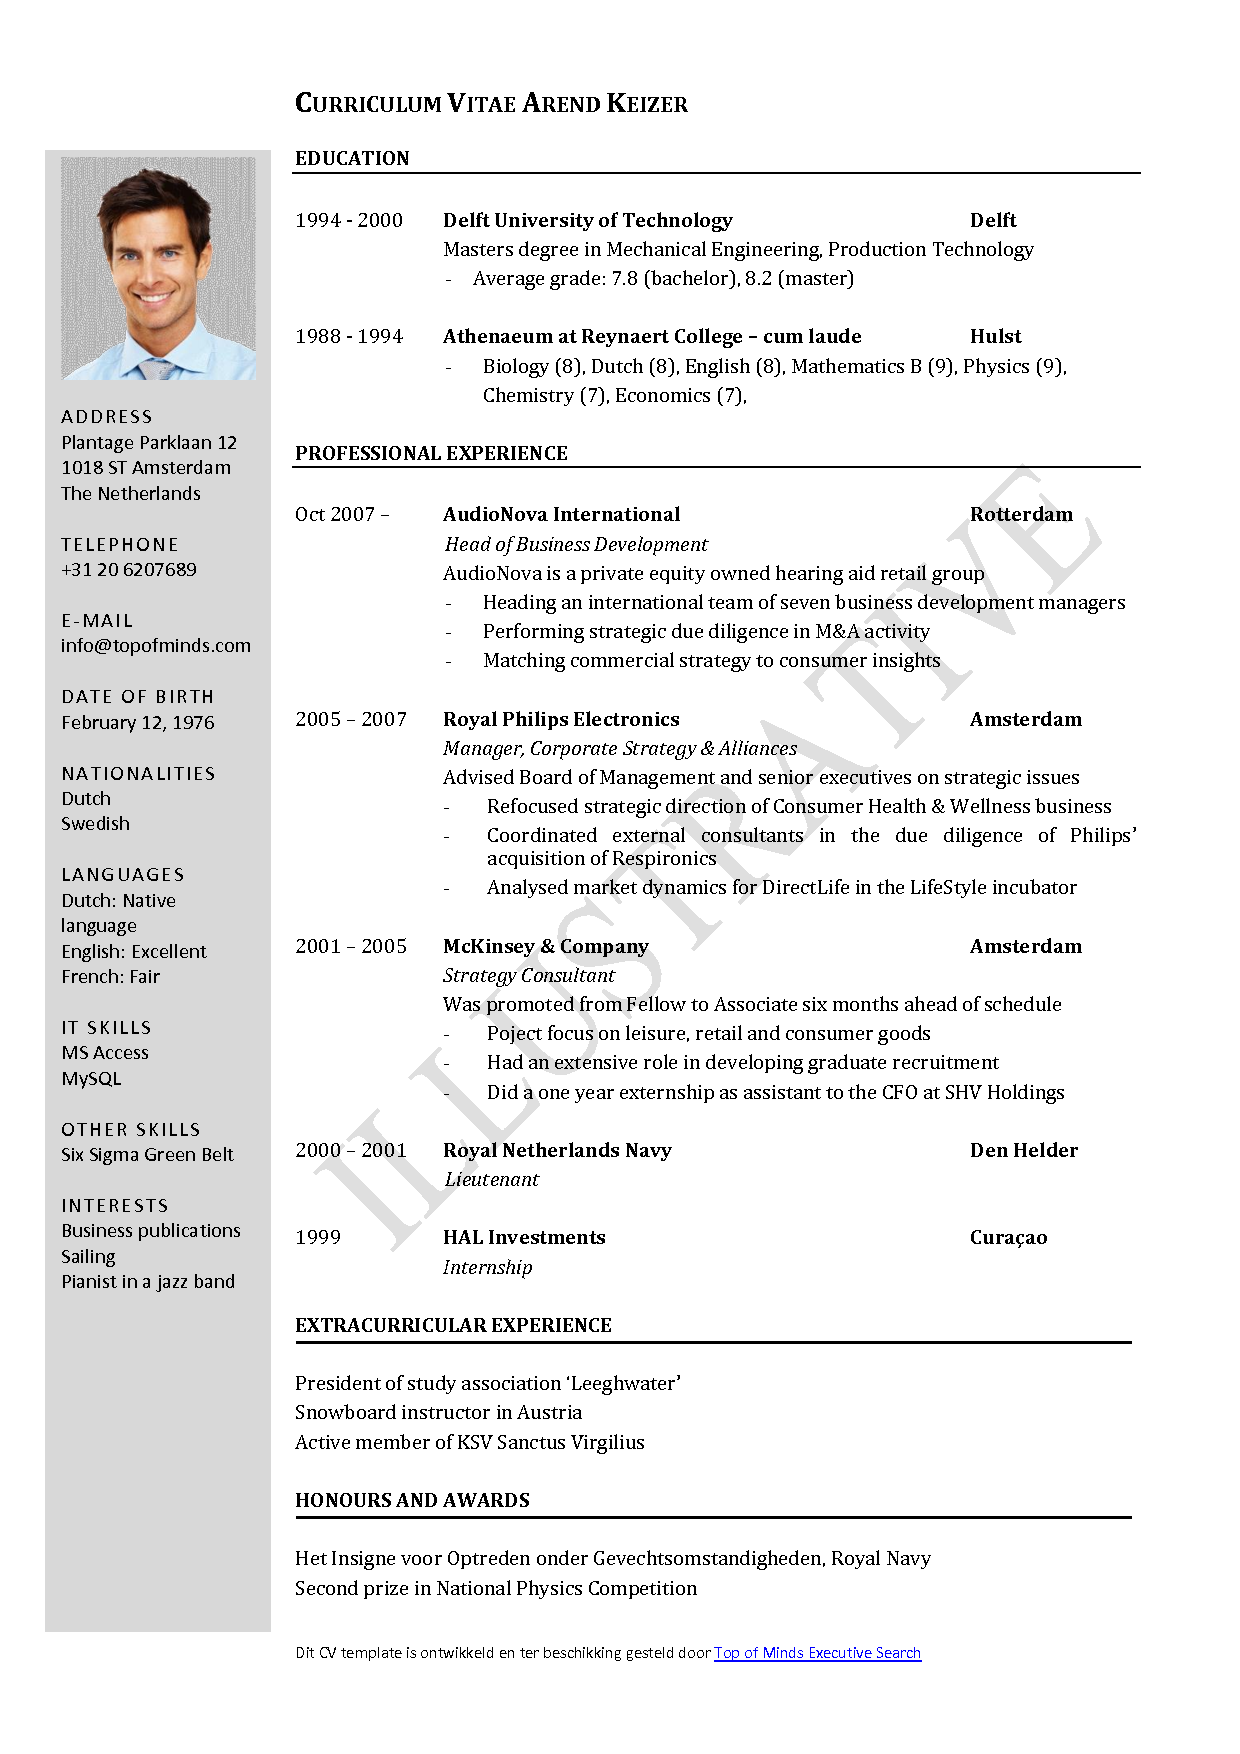 free curriculum vitae template word download cv template - How To Use Resume Template In Word